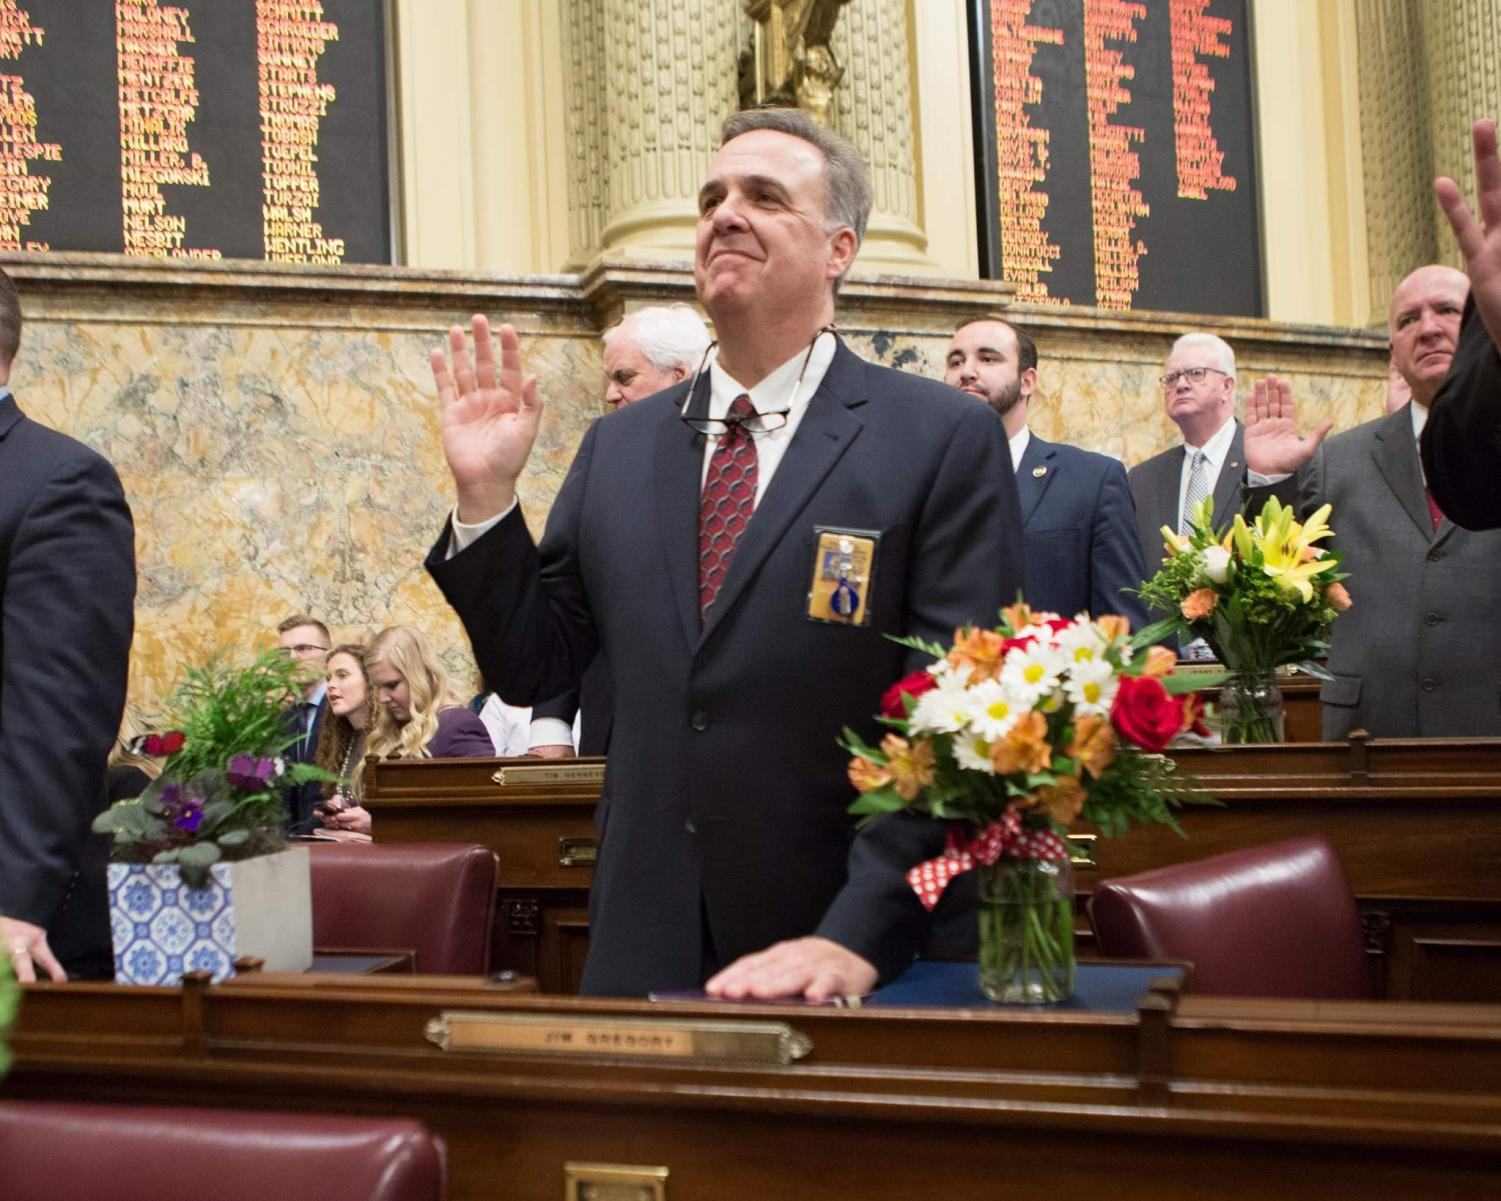 Jim Gregory taking the Oath of Office at the State Capitol on January 1st